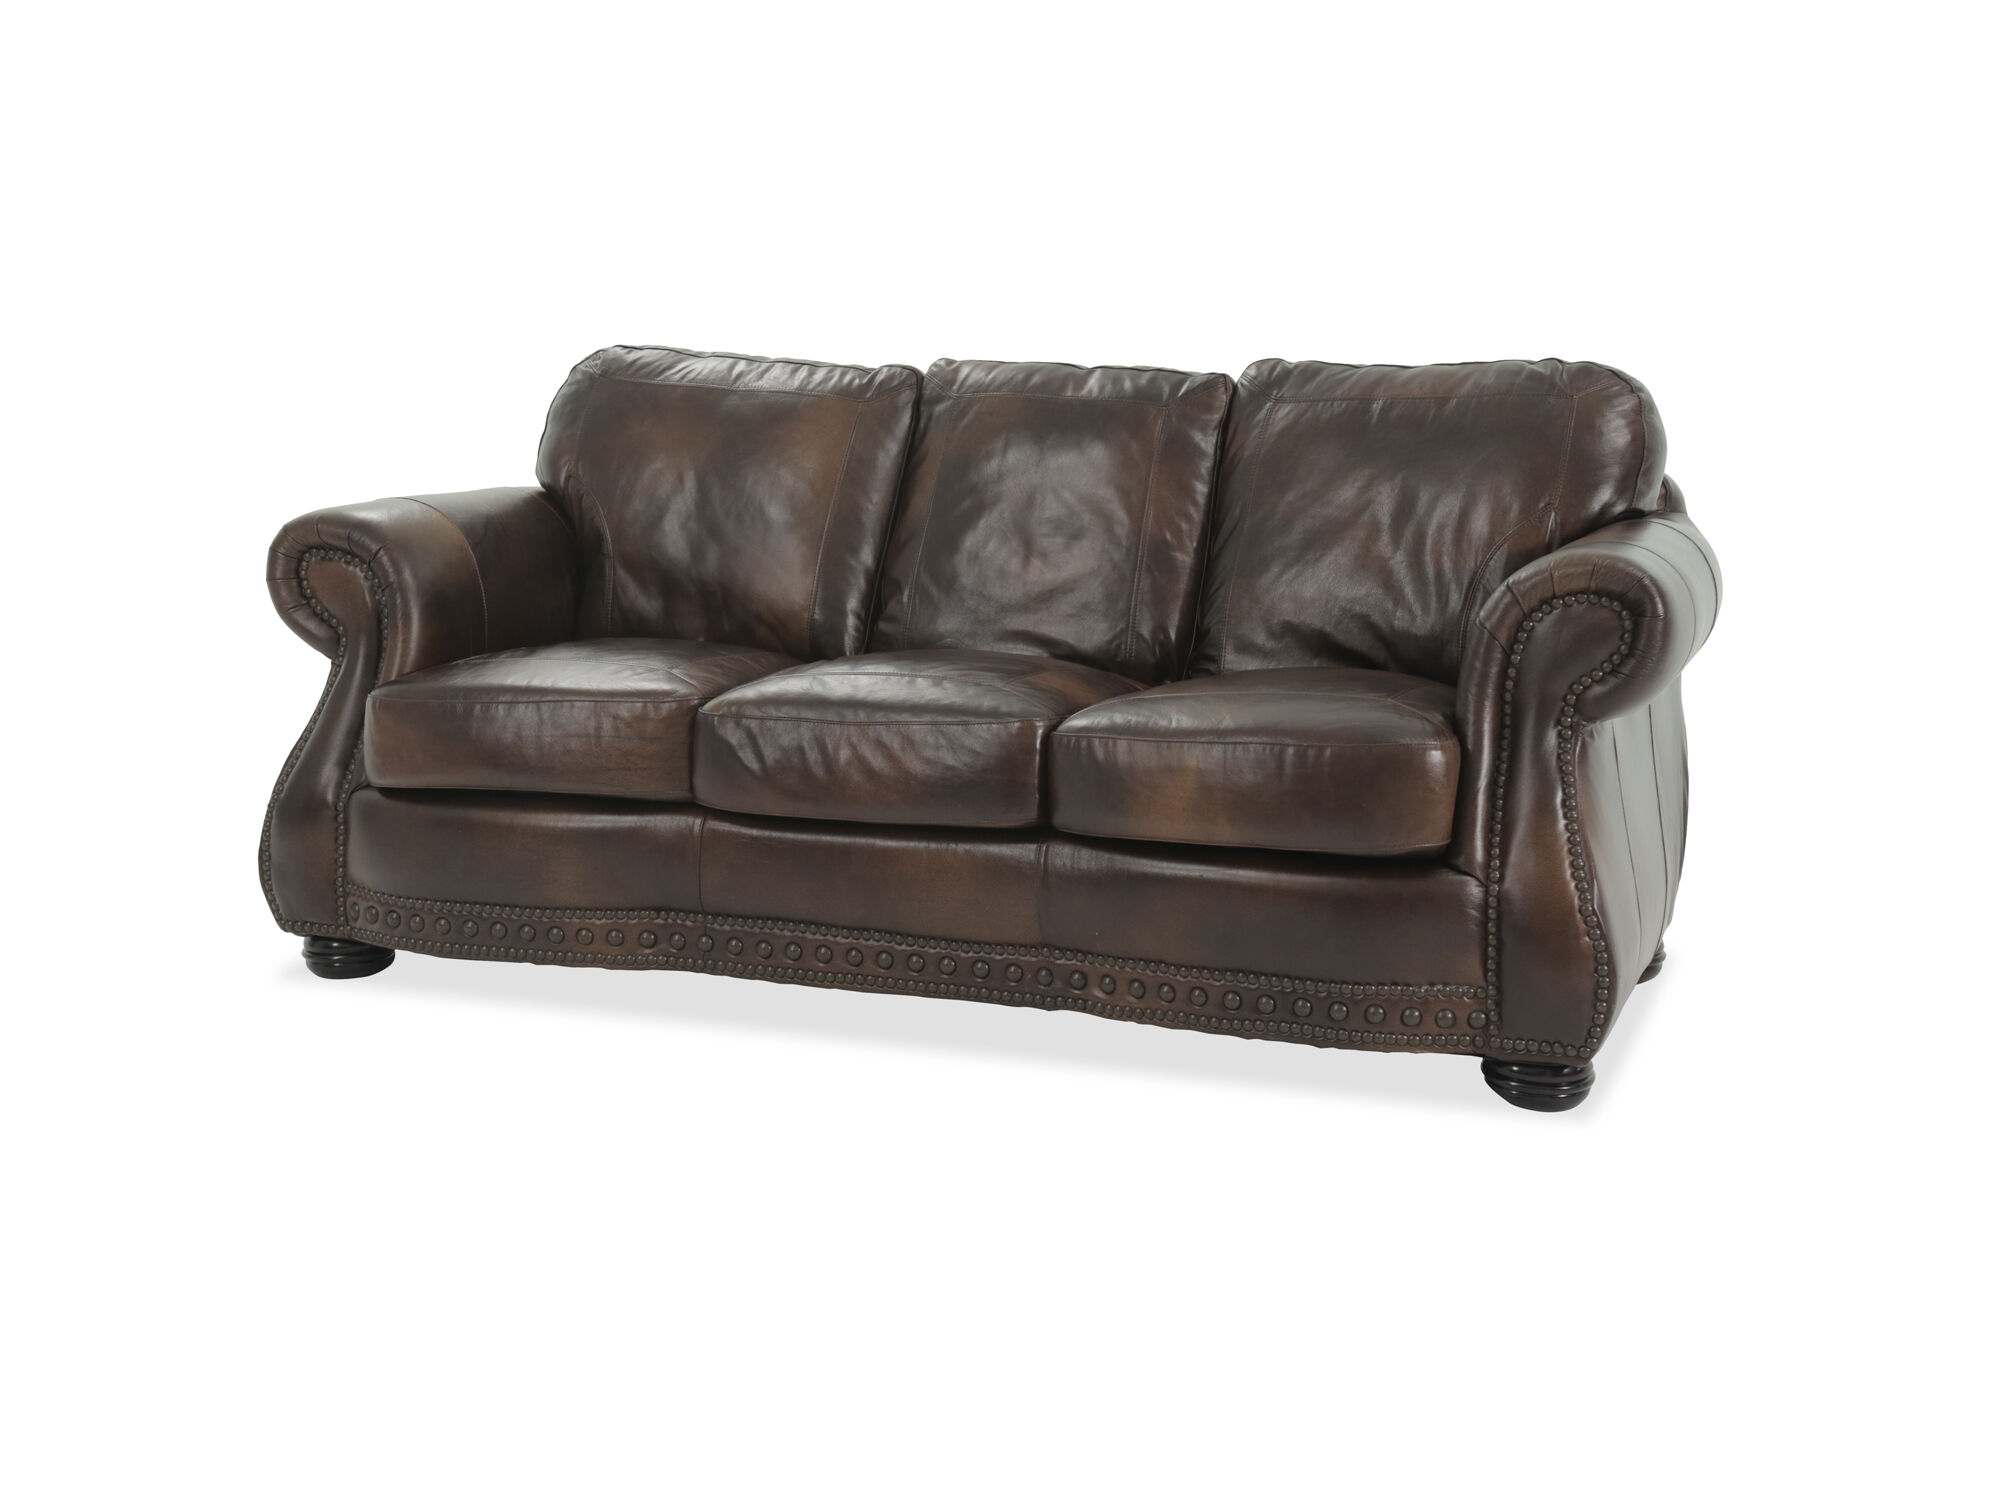 Covered By Luxurious 100% Top Grain Leather In A Rich, Glossy Medium Brown,  Itu0027s A Stylish Way To Add Comfort To Any Room.